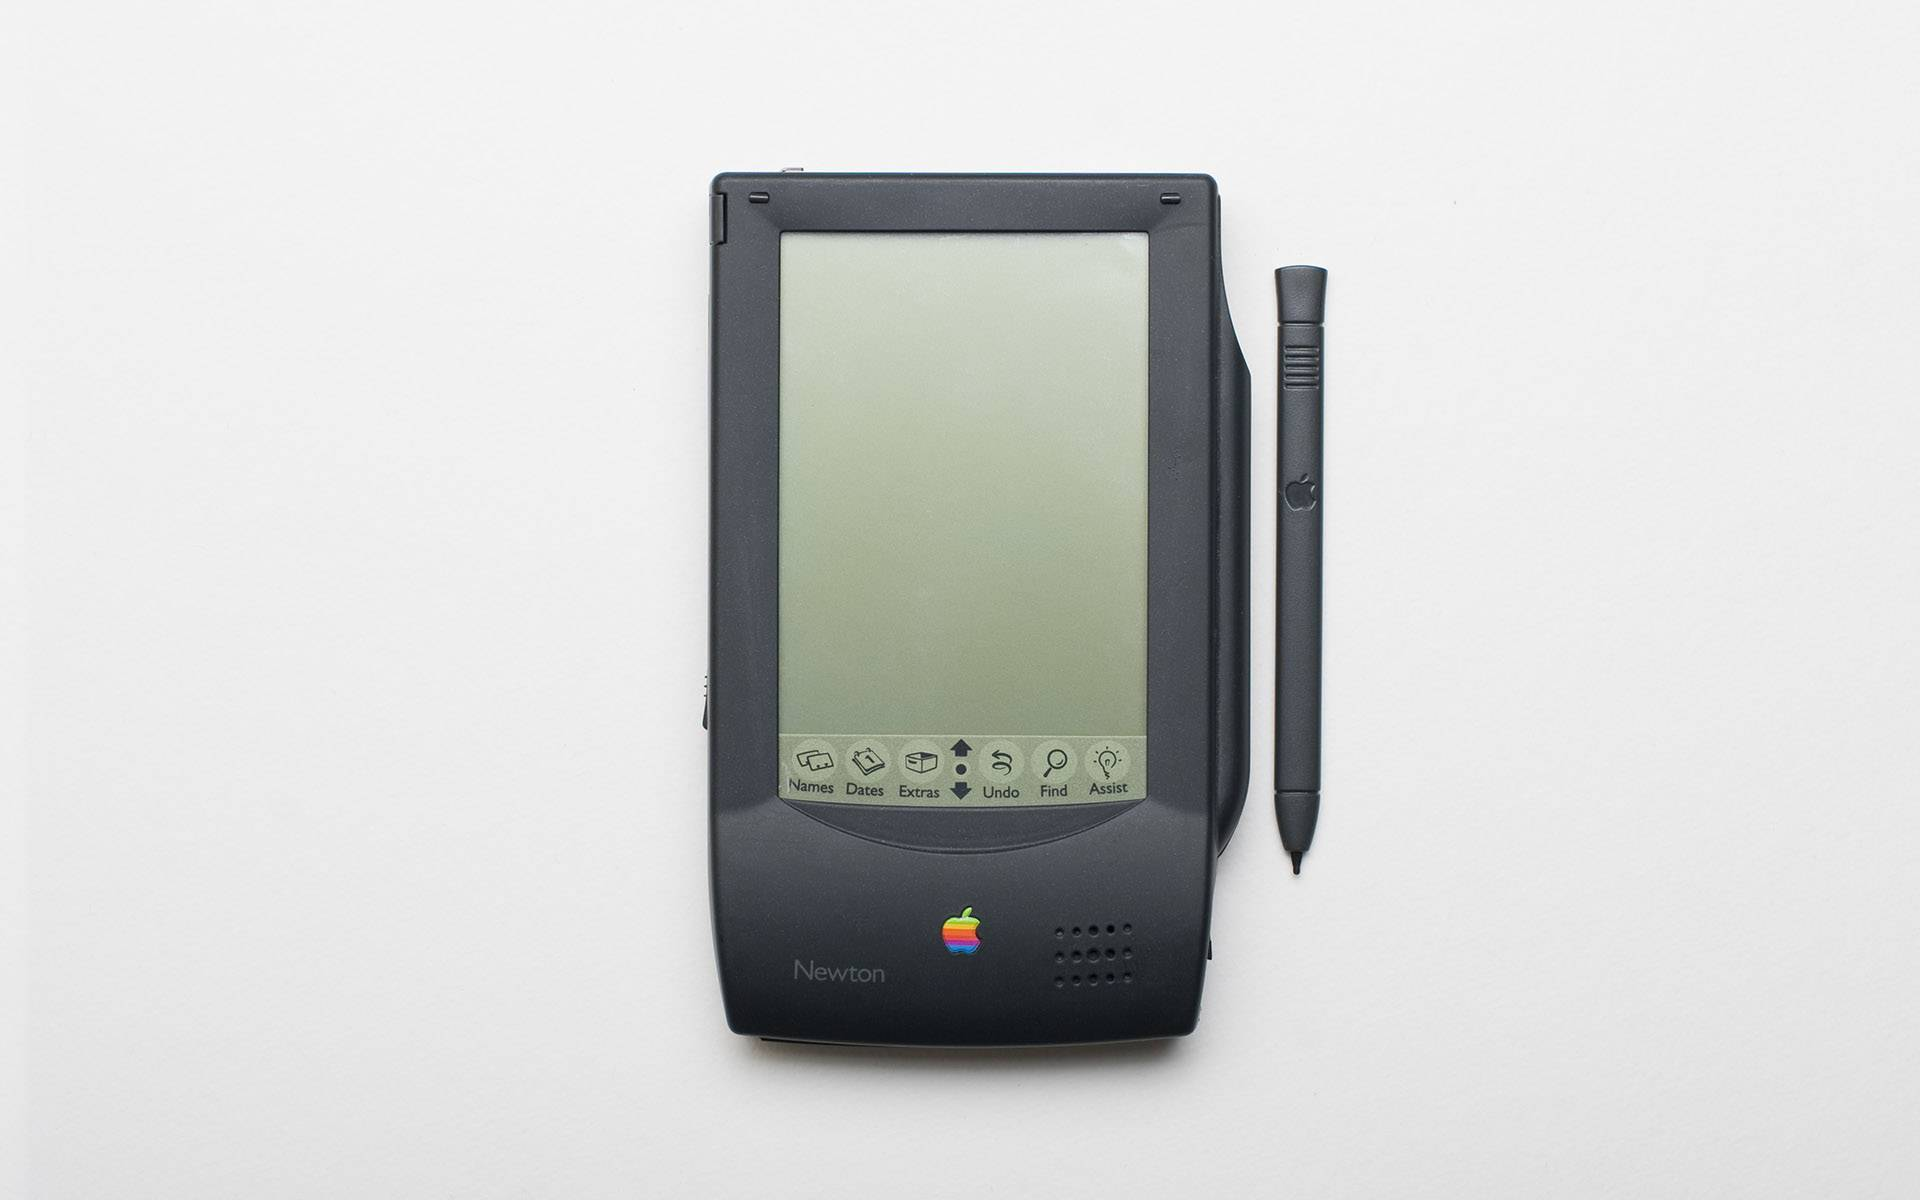 Apple Newton with ARM inside